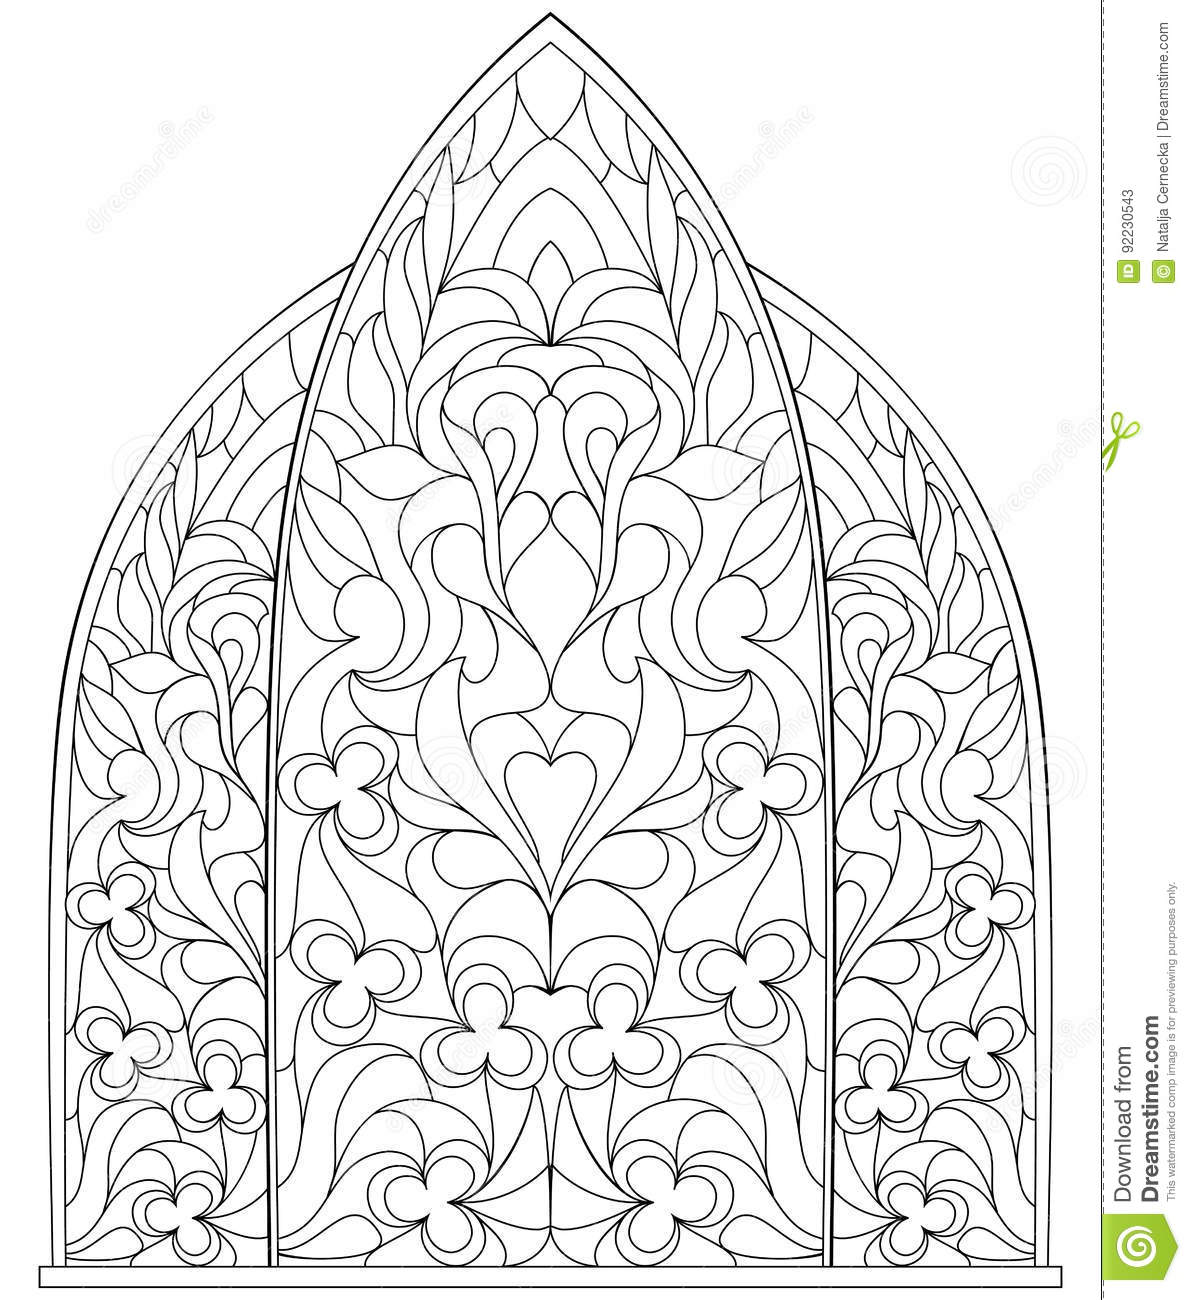 black and white page for coloring for children and adults